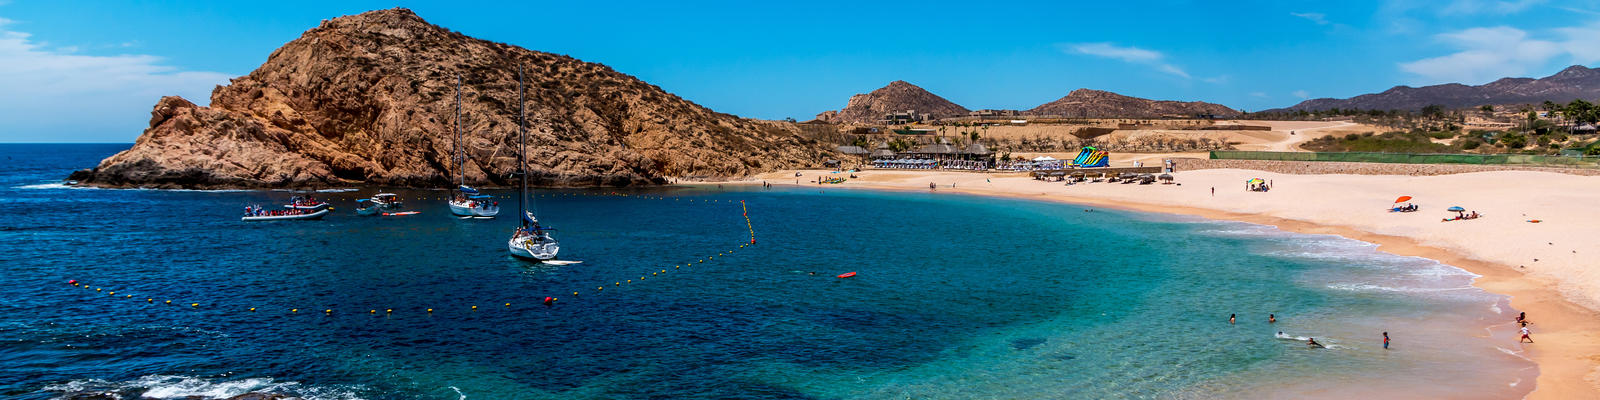 Santa Maria beach by Cabo San Lucu (Photo: rhfletcher/Shutterstock)